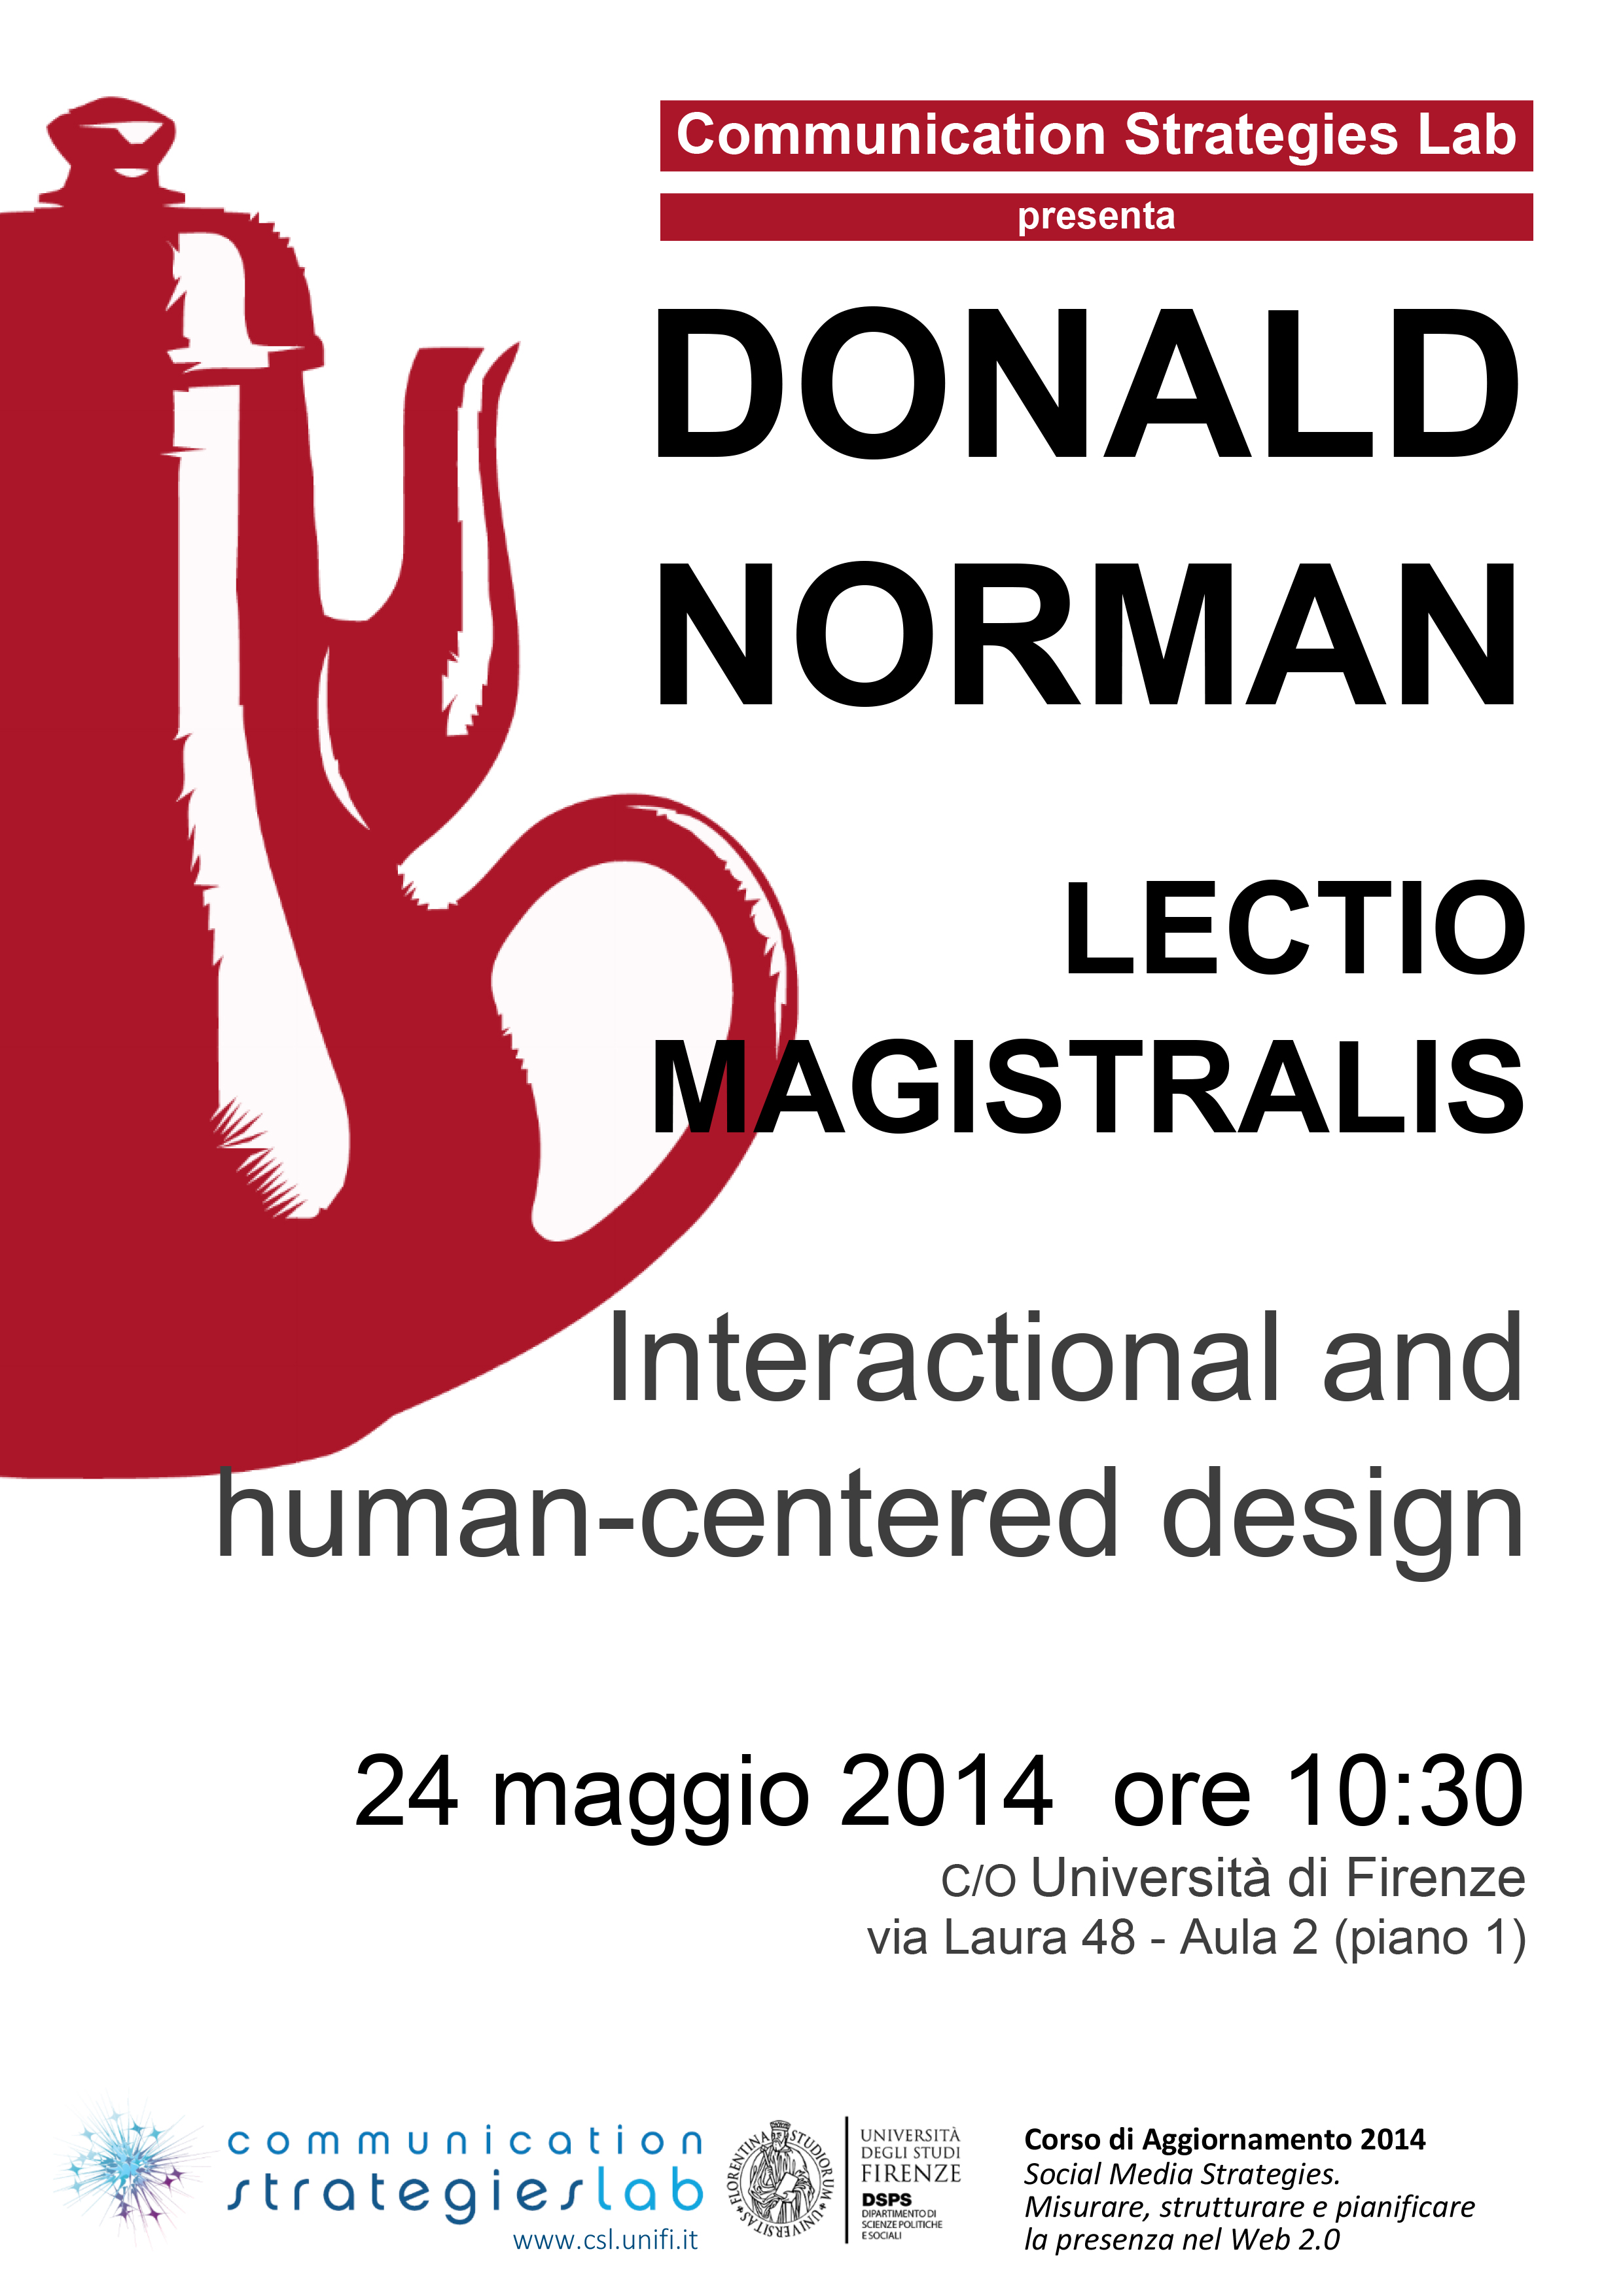 Interactional and Human-Centered Design